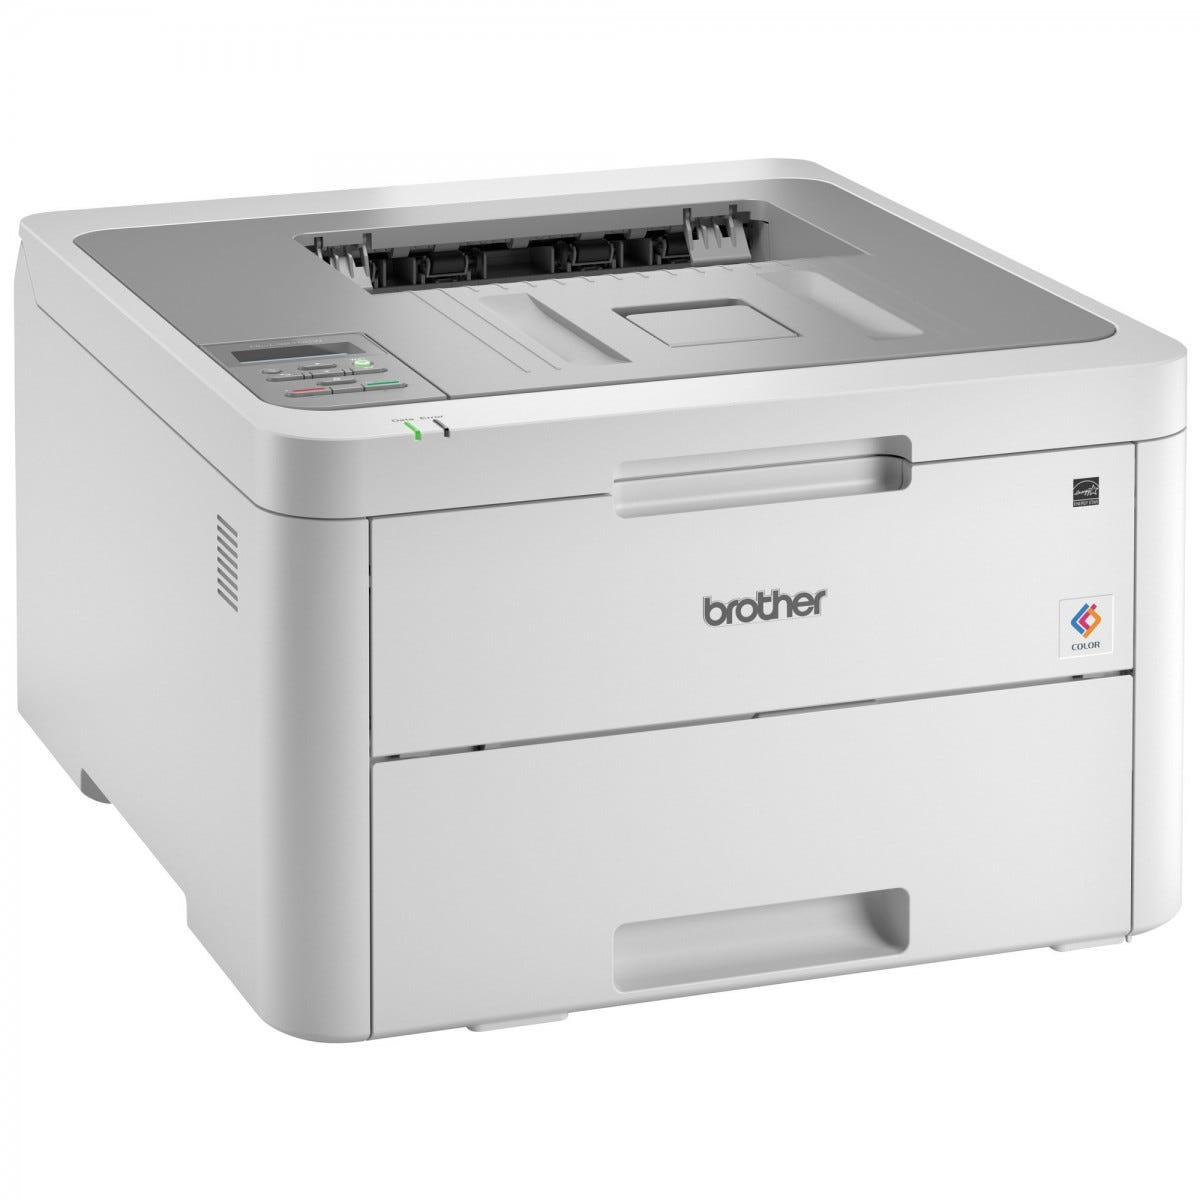 The Brother HL-L3210 printer